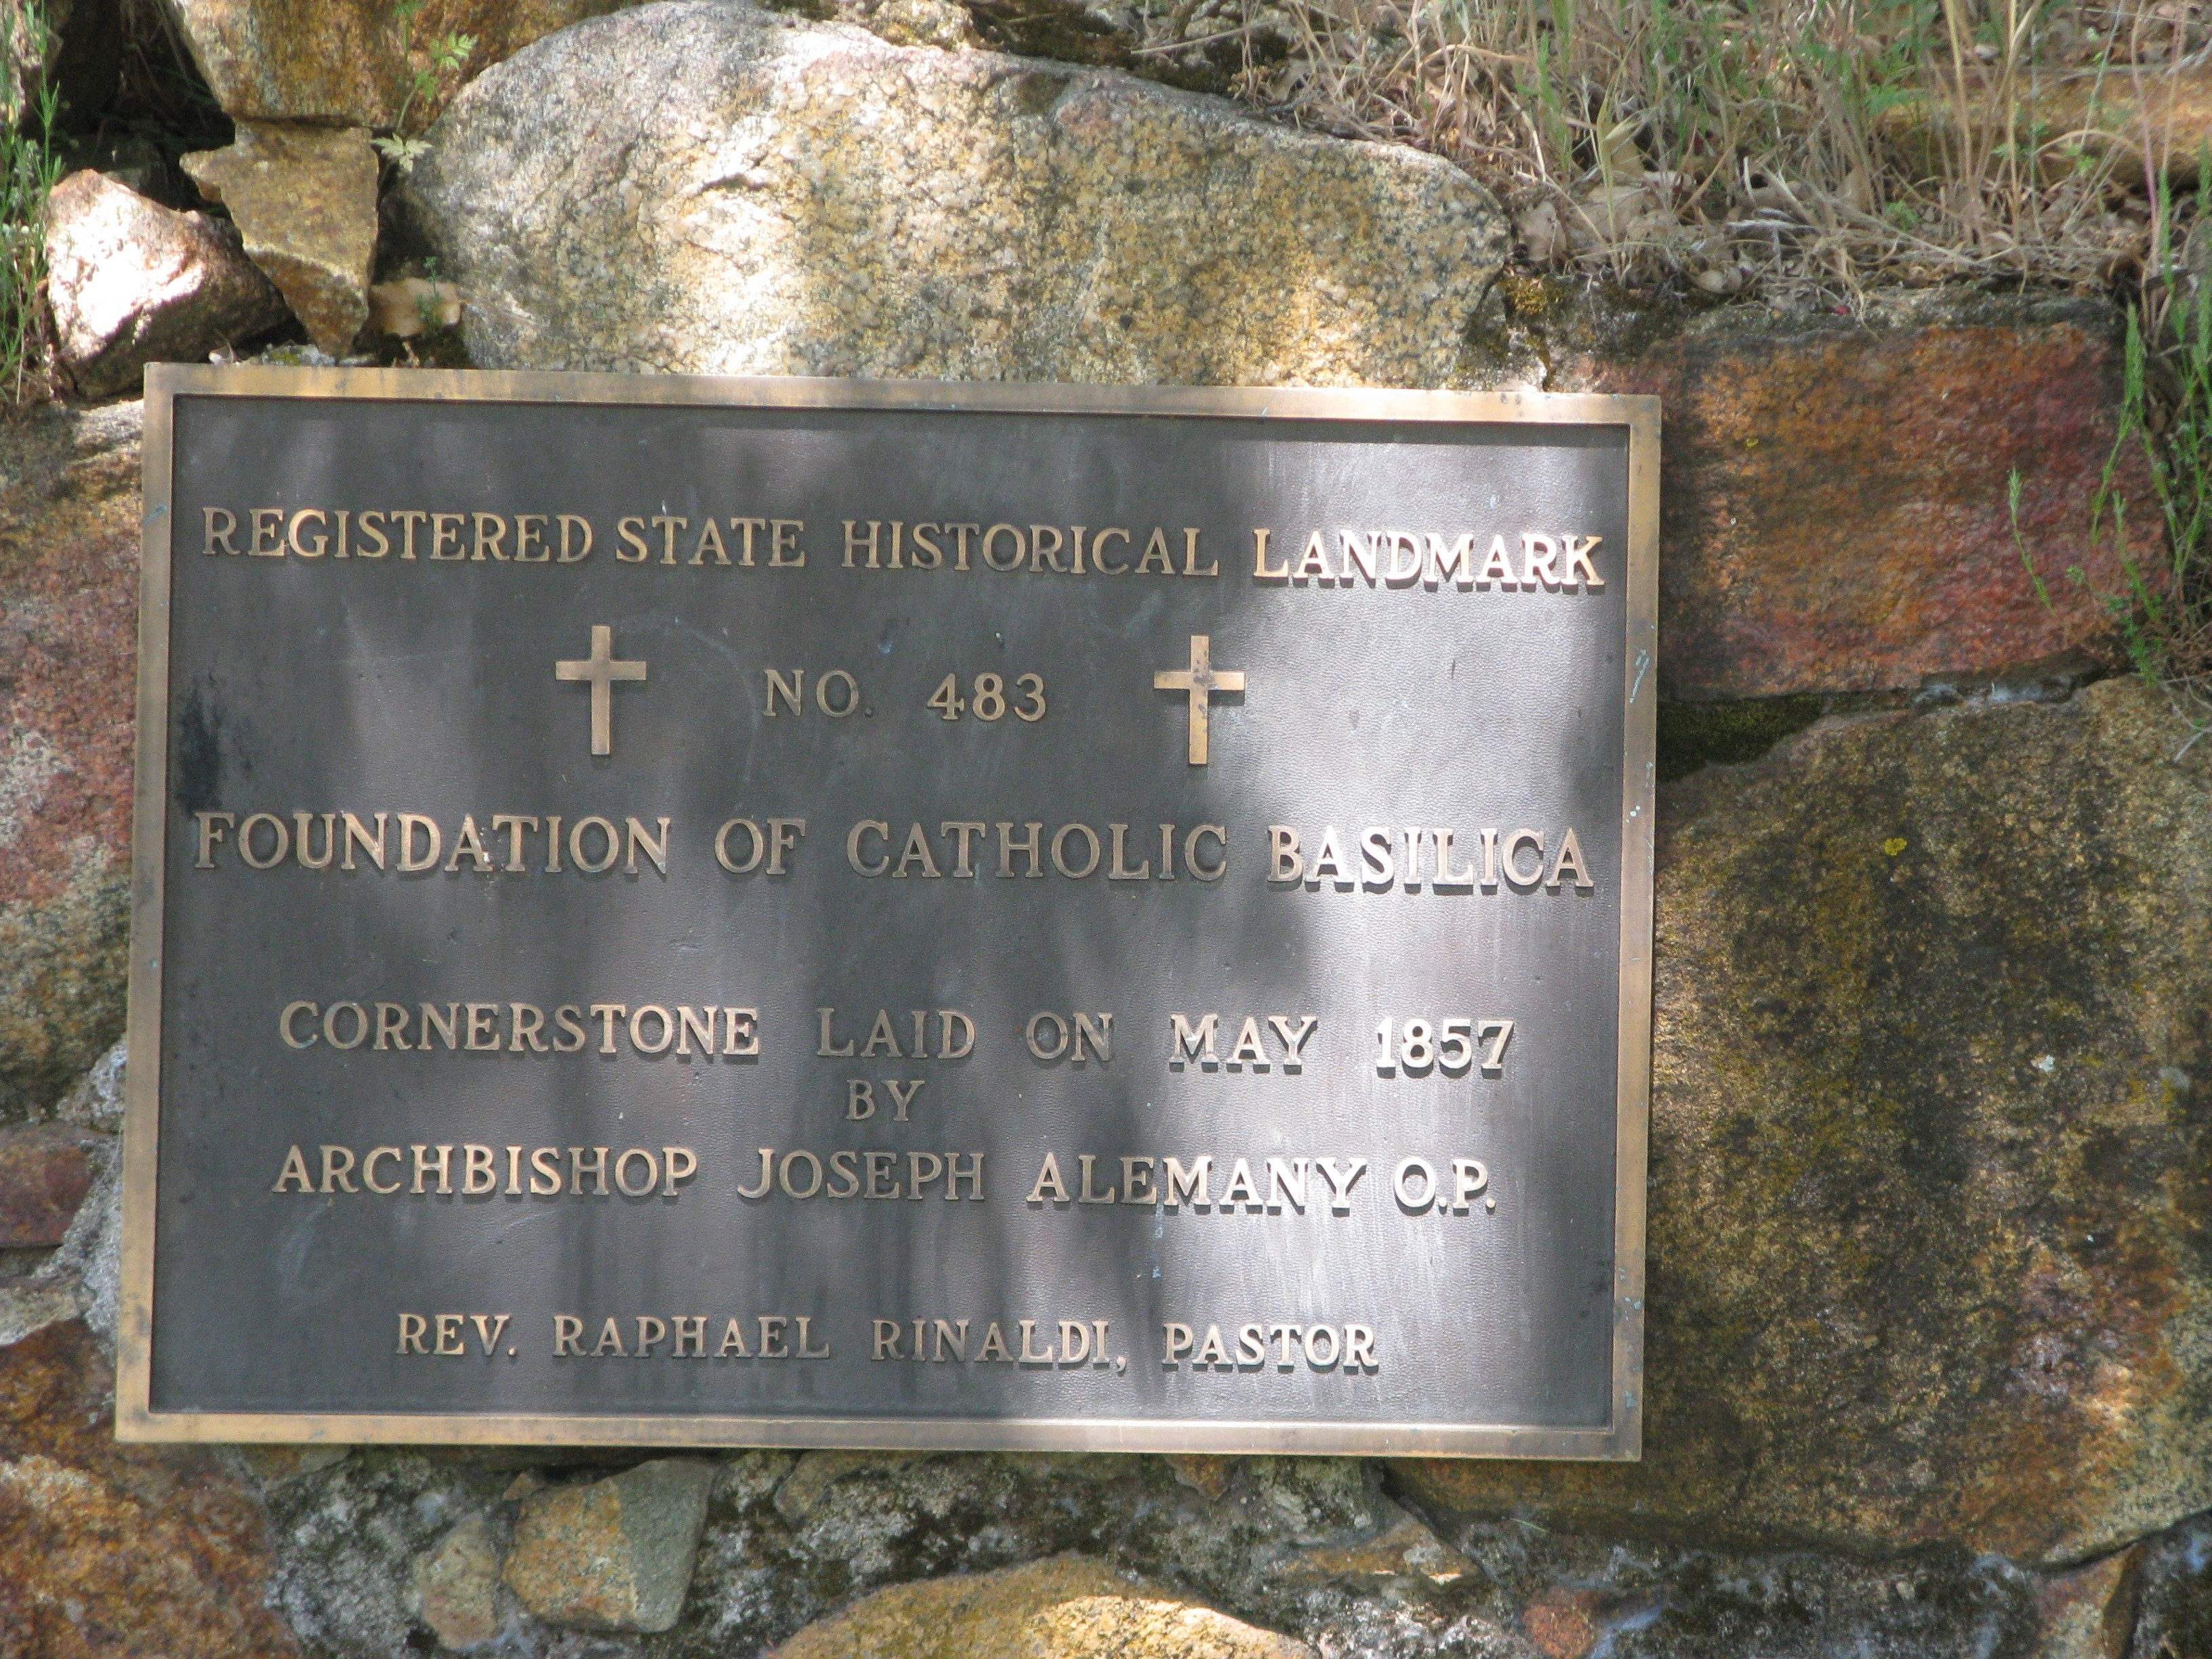 Foundation of Catholic Basilica Marker